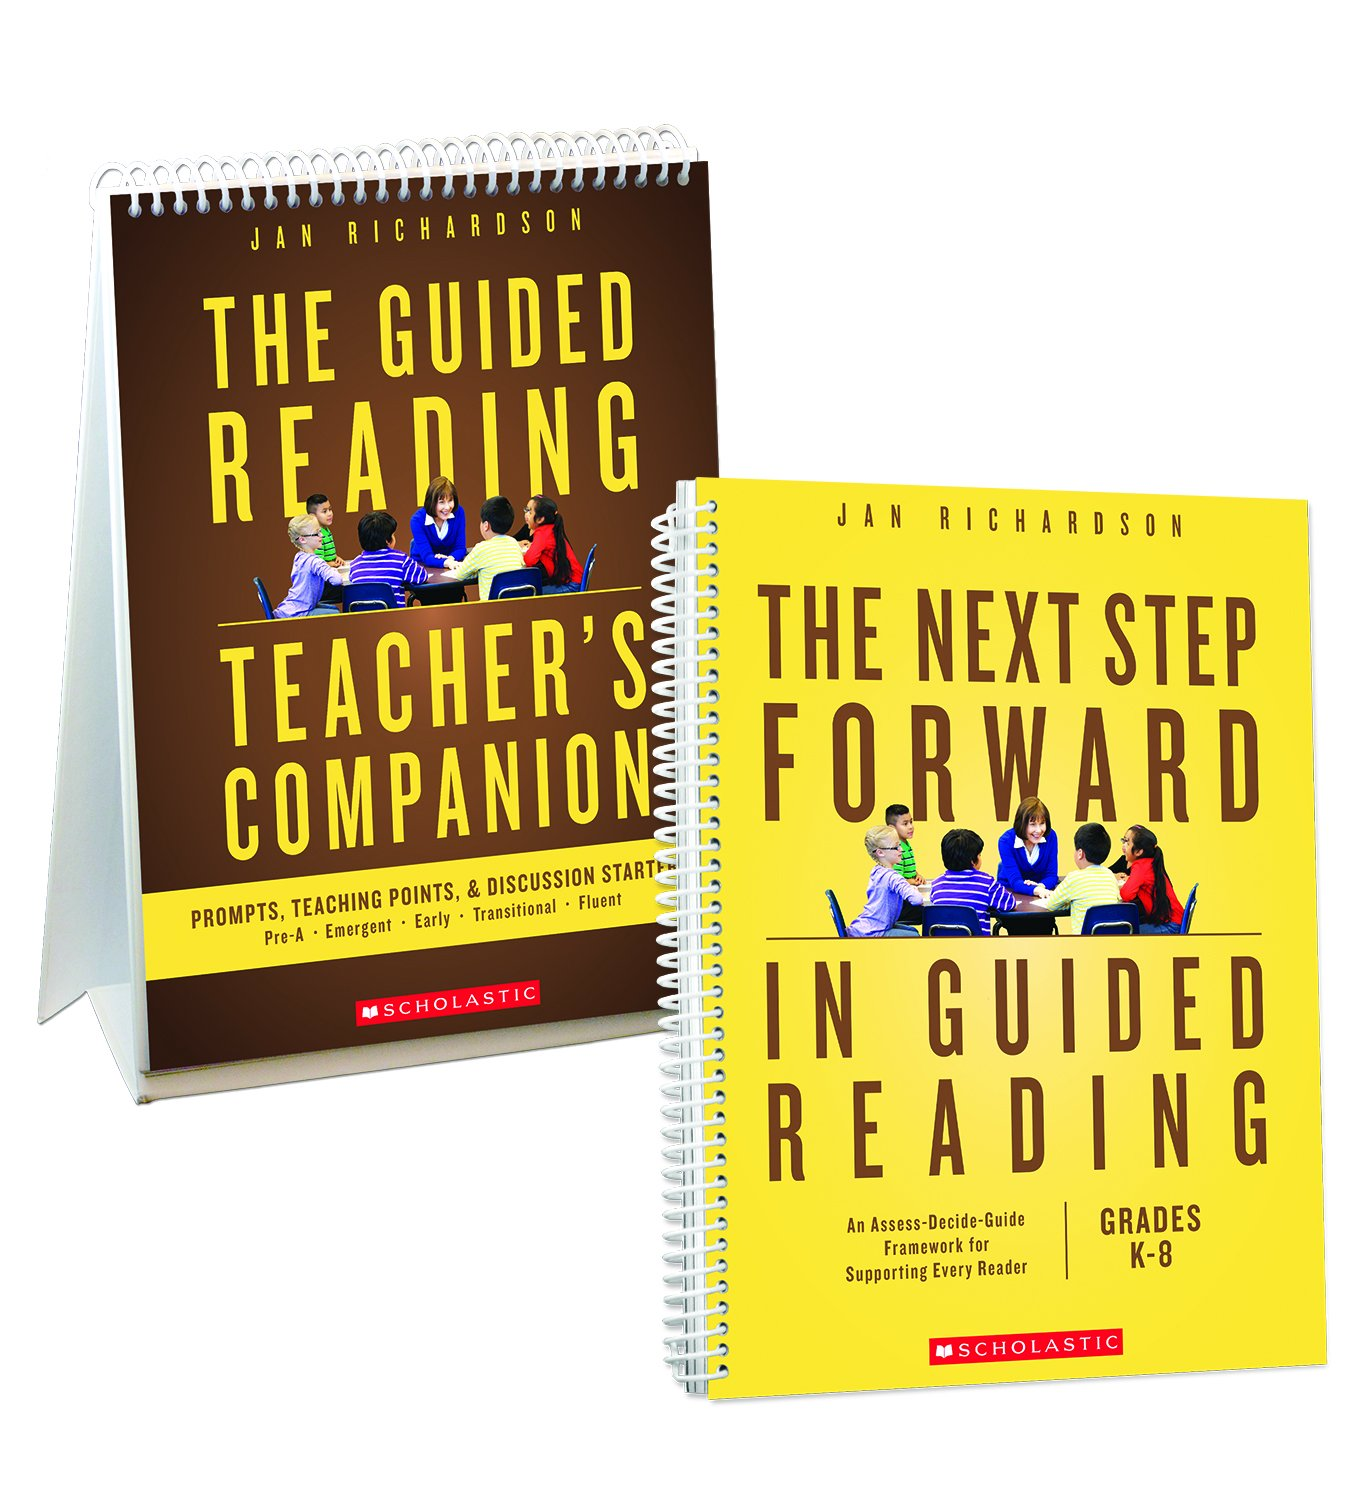 The Next Step Forward in Guided Reading book + The Guided Reading Teacher's Companion by Scholastic